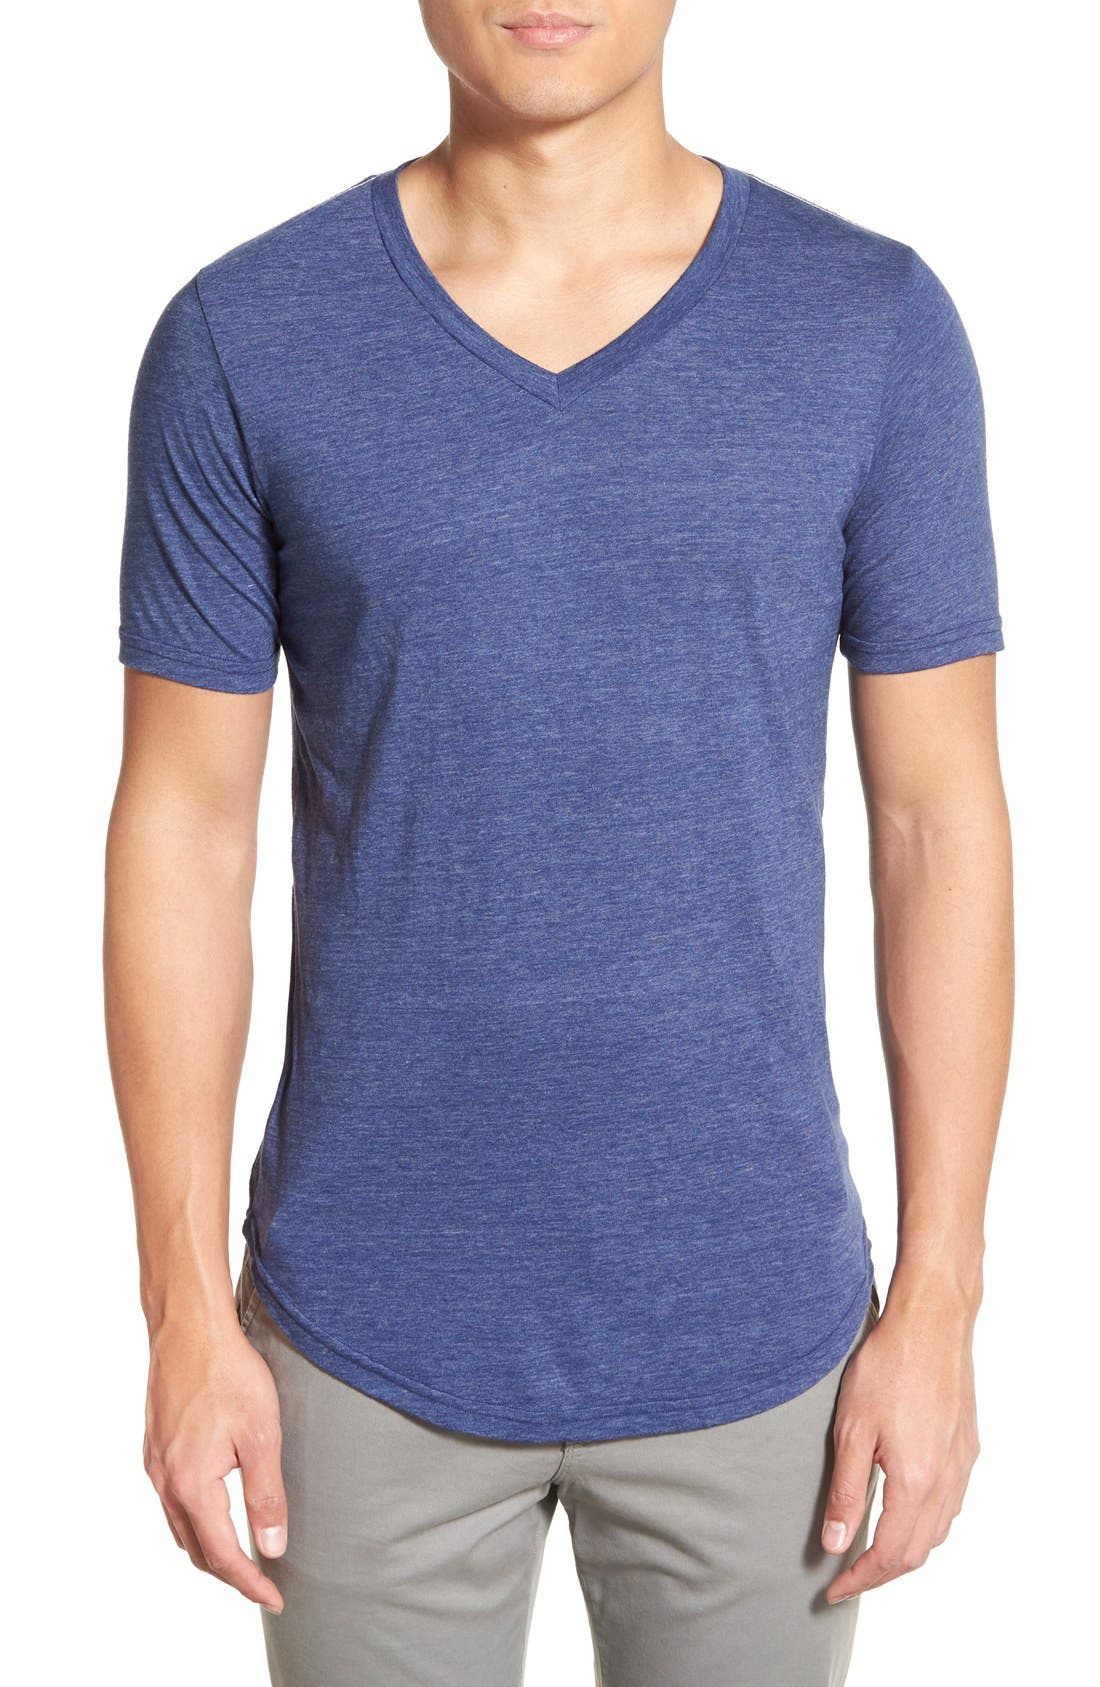 Goodlife V-Neck T-Shirt